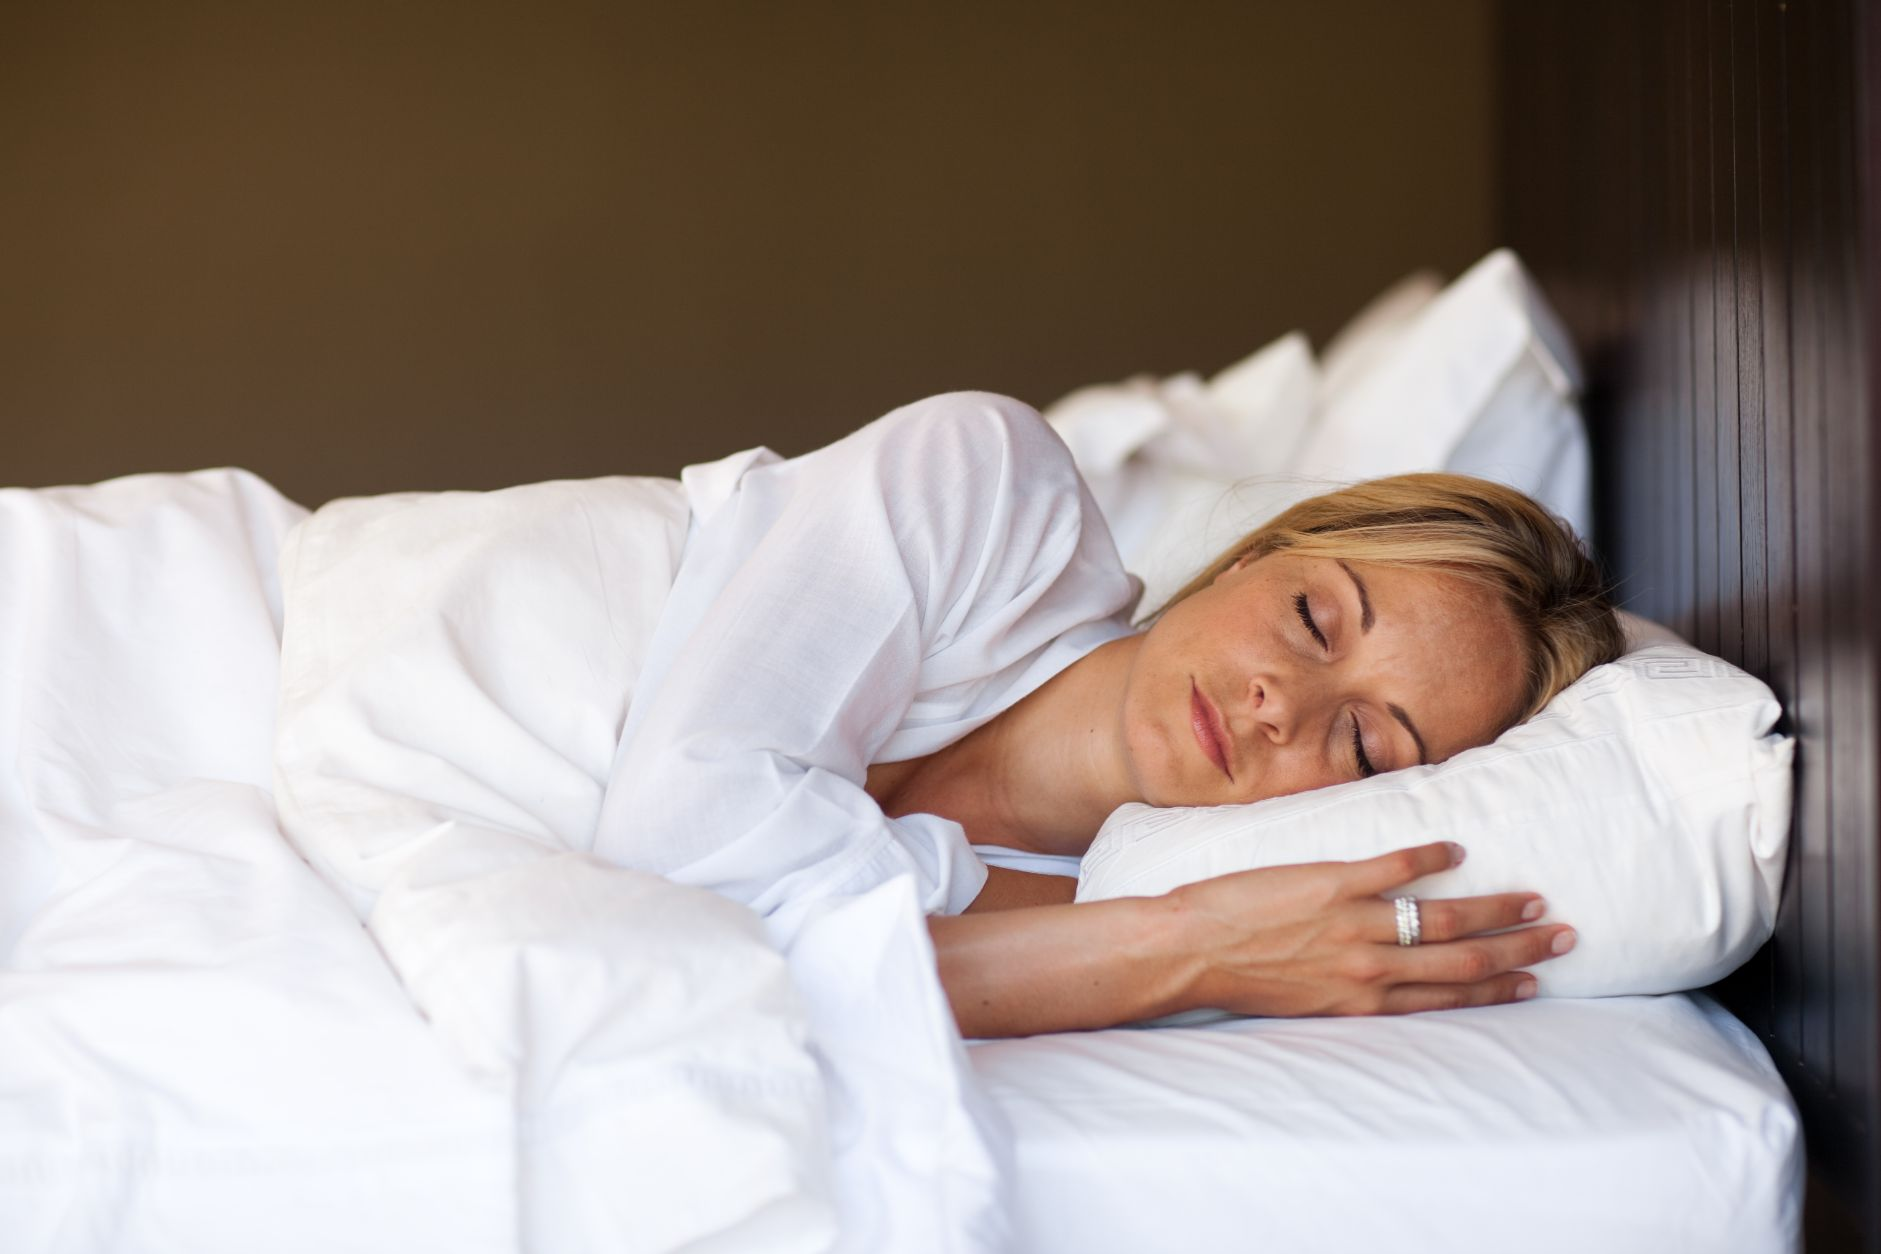 Buying Guide: Tips on Selecting a New Mattress